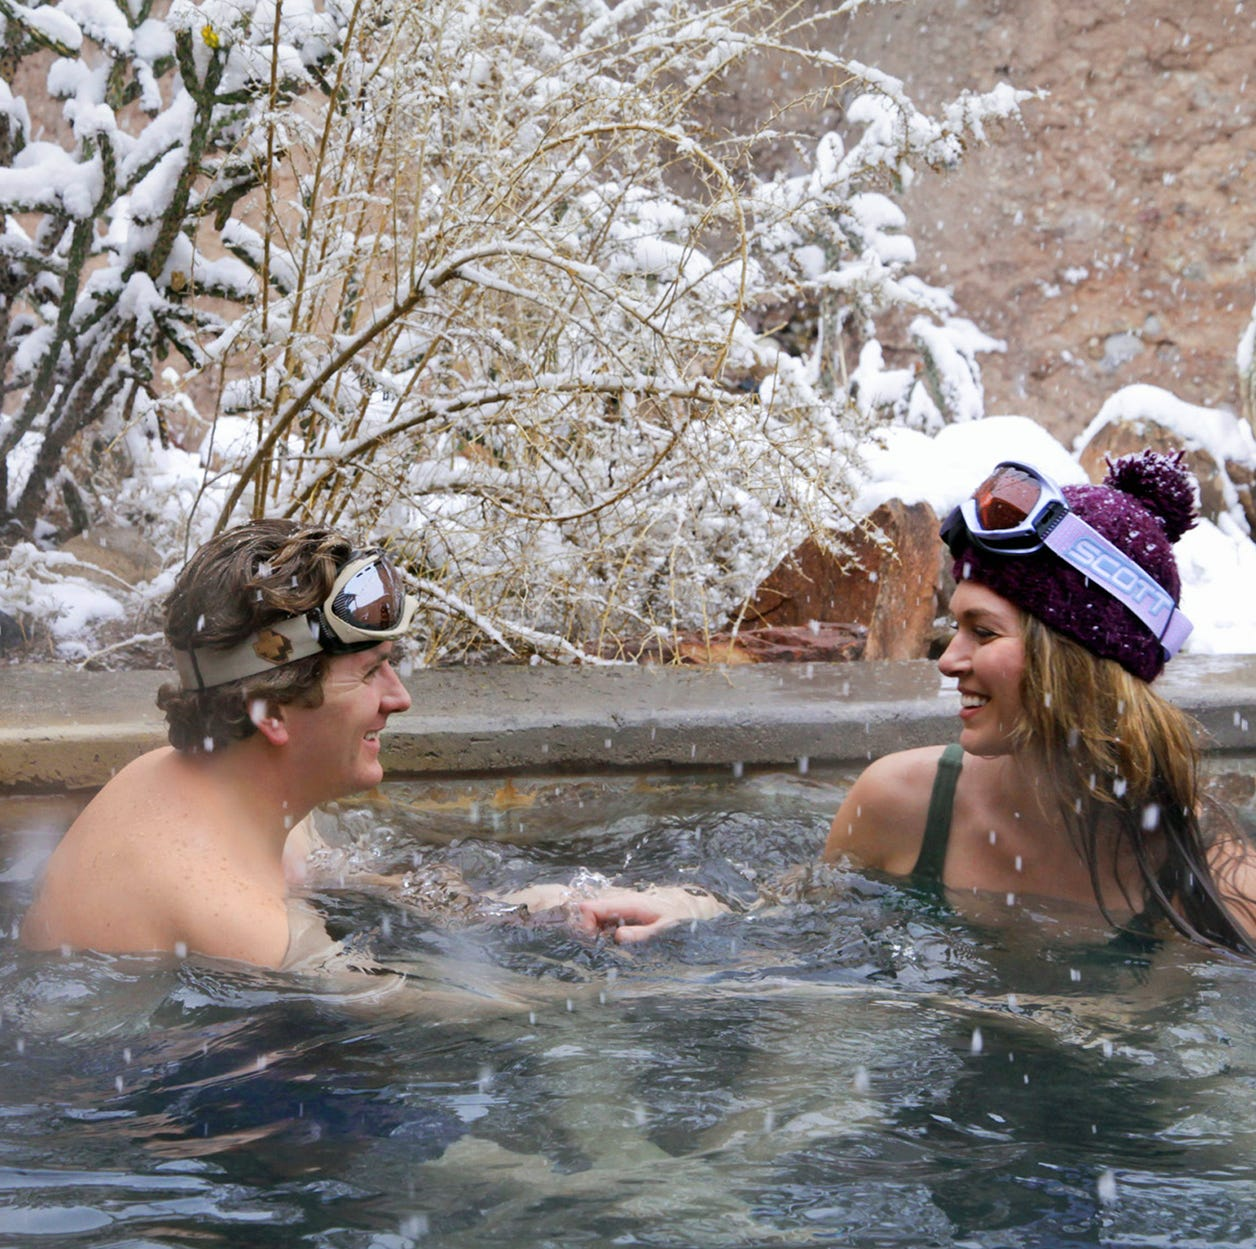 Visit New Mexico's best hot springs this season